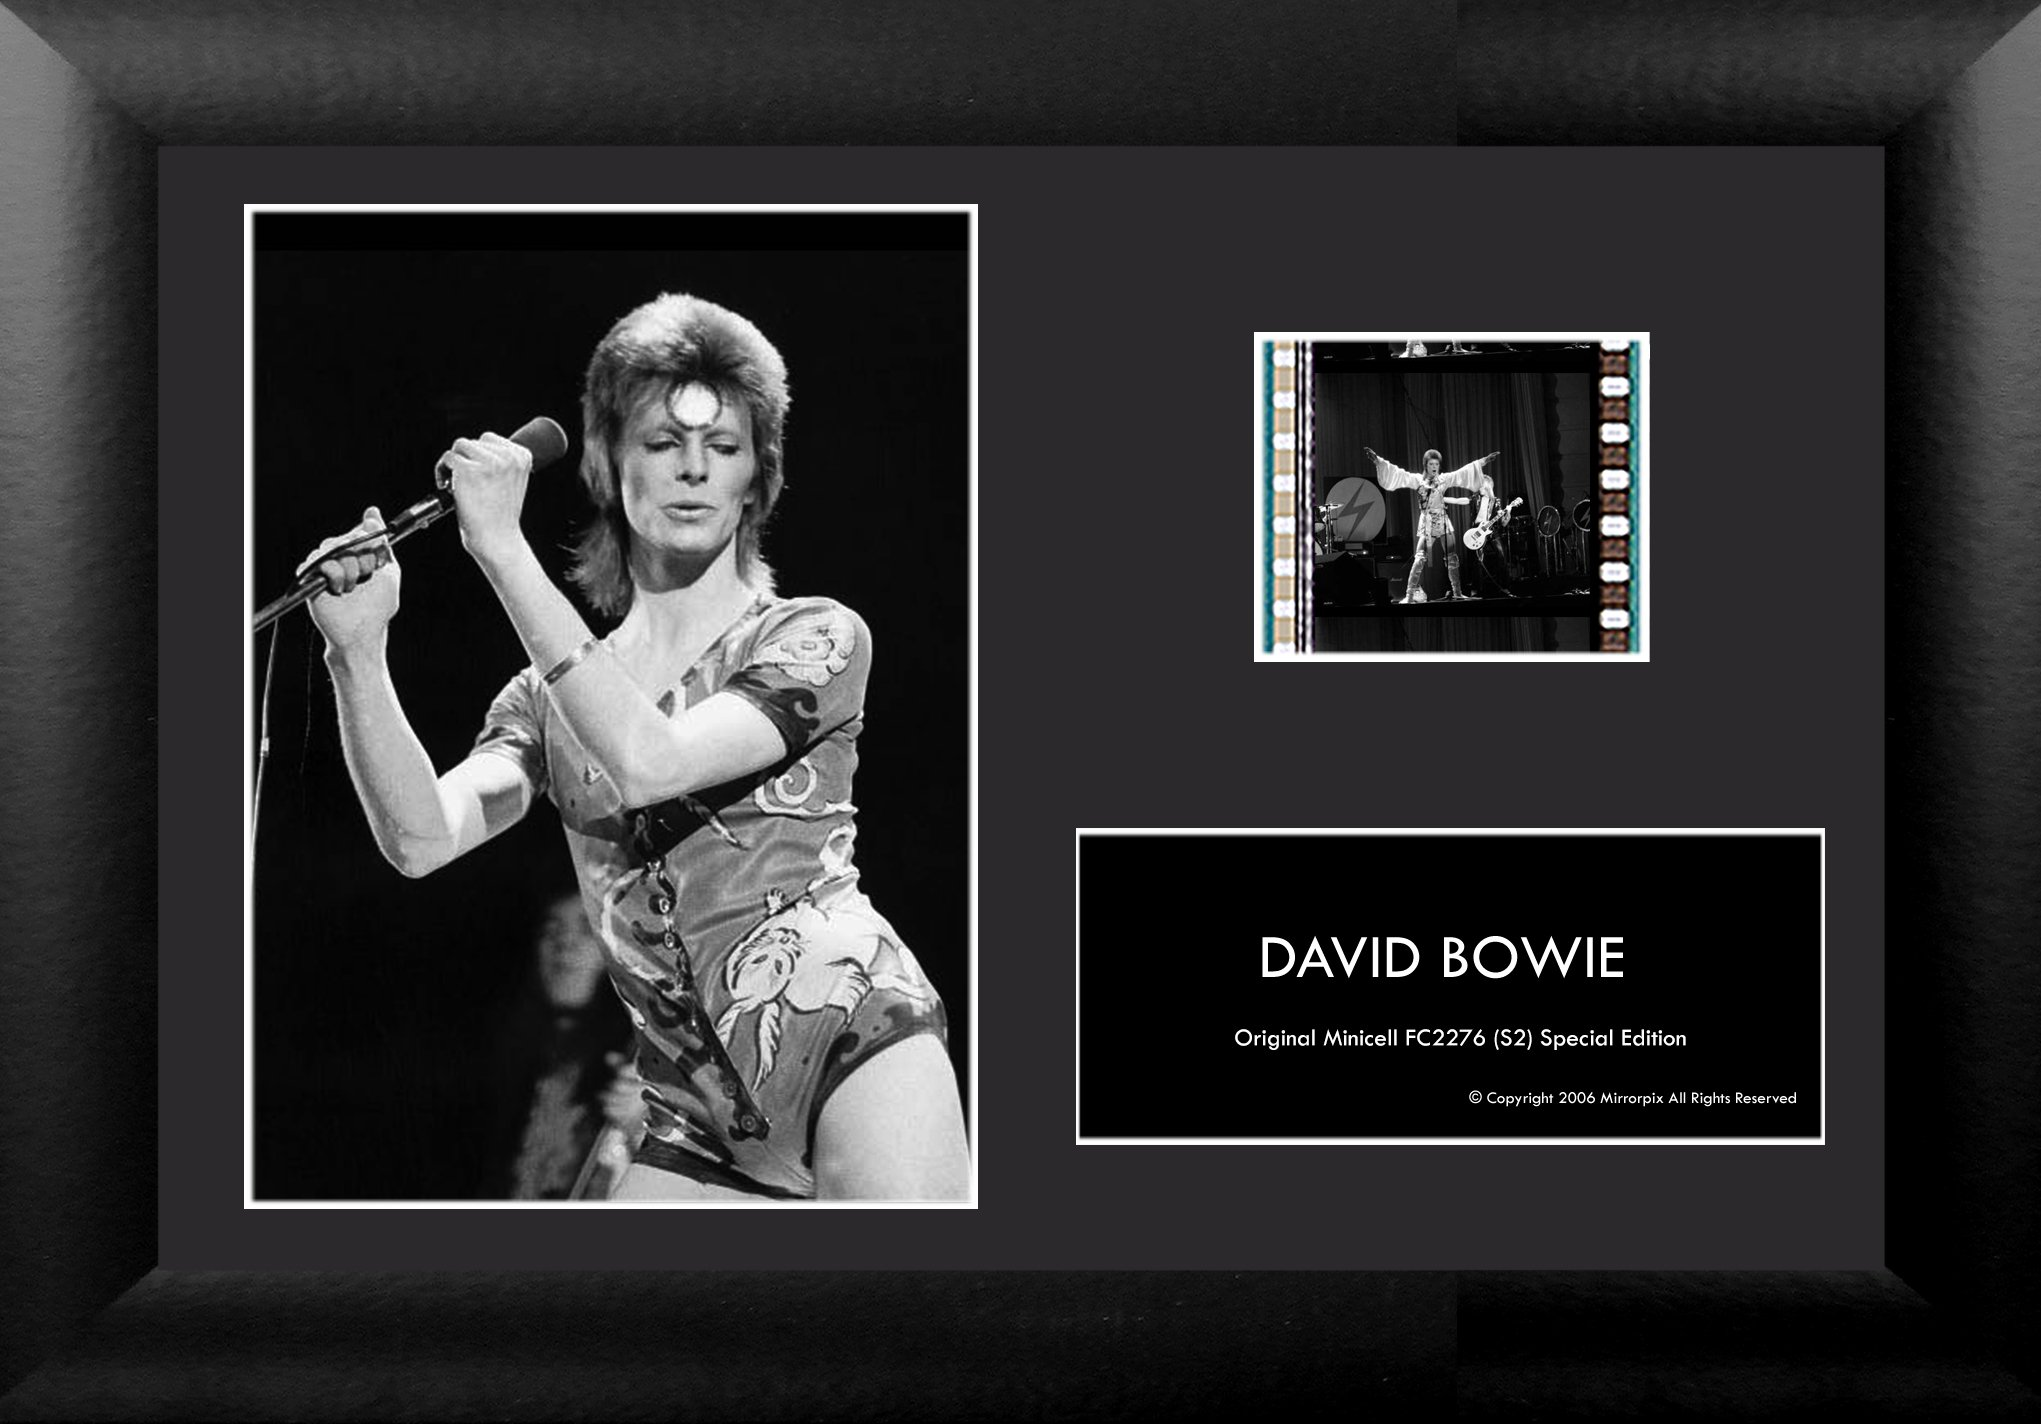 Film Cells David Bowie 35mm Minicell Display w/COA and Easel Stand!